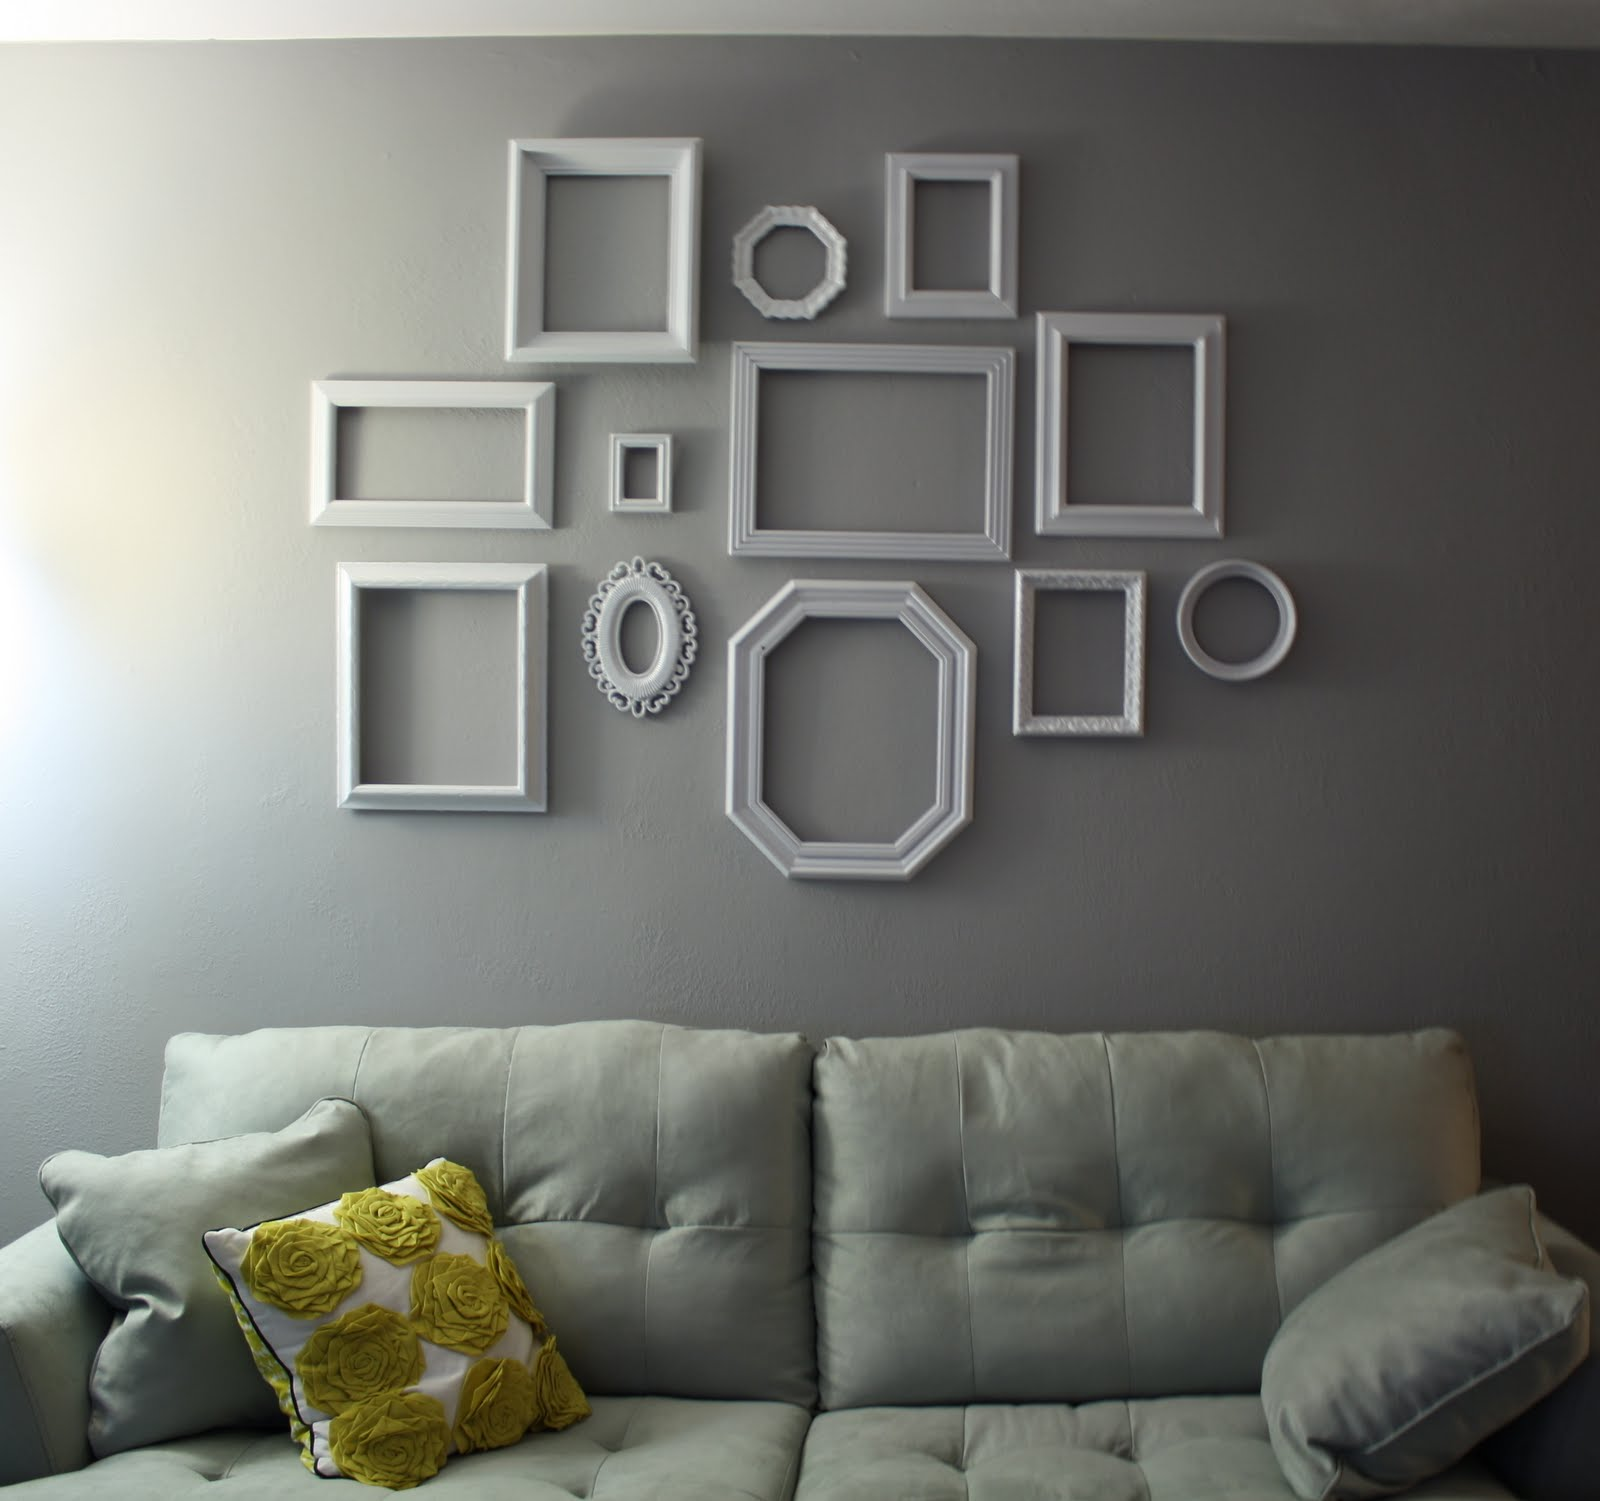 Use Empty Frames To Decorate Home